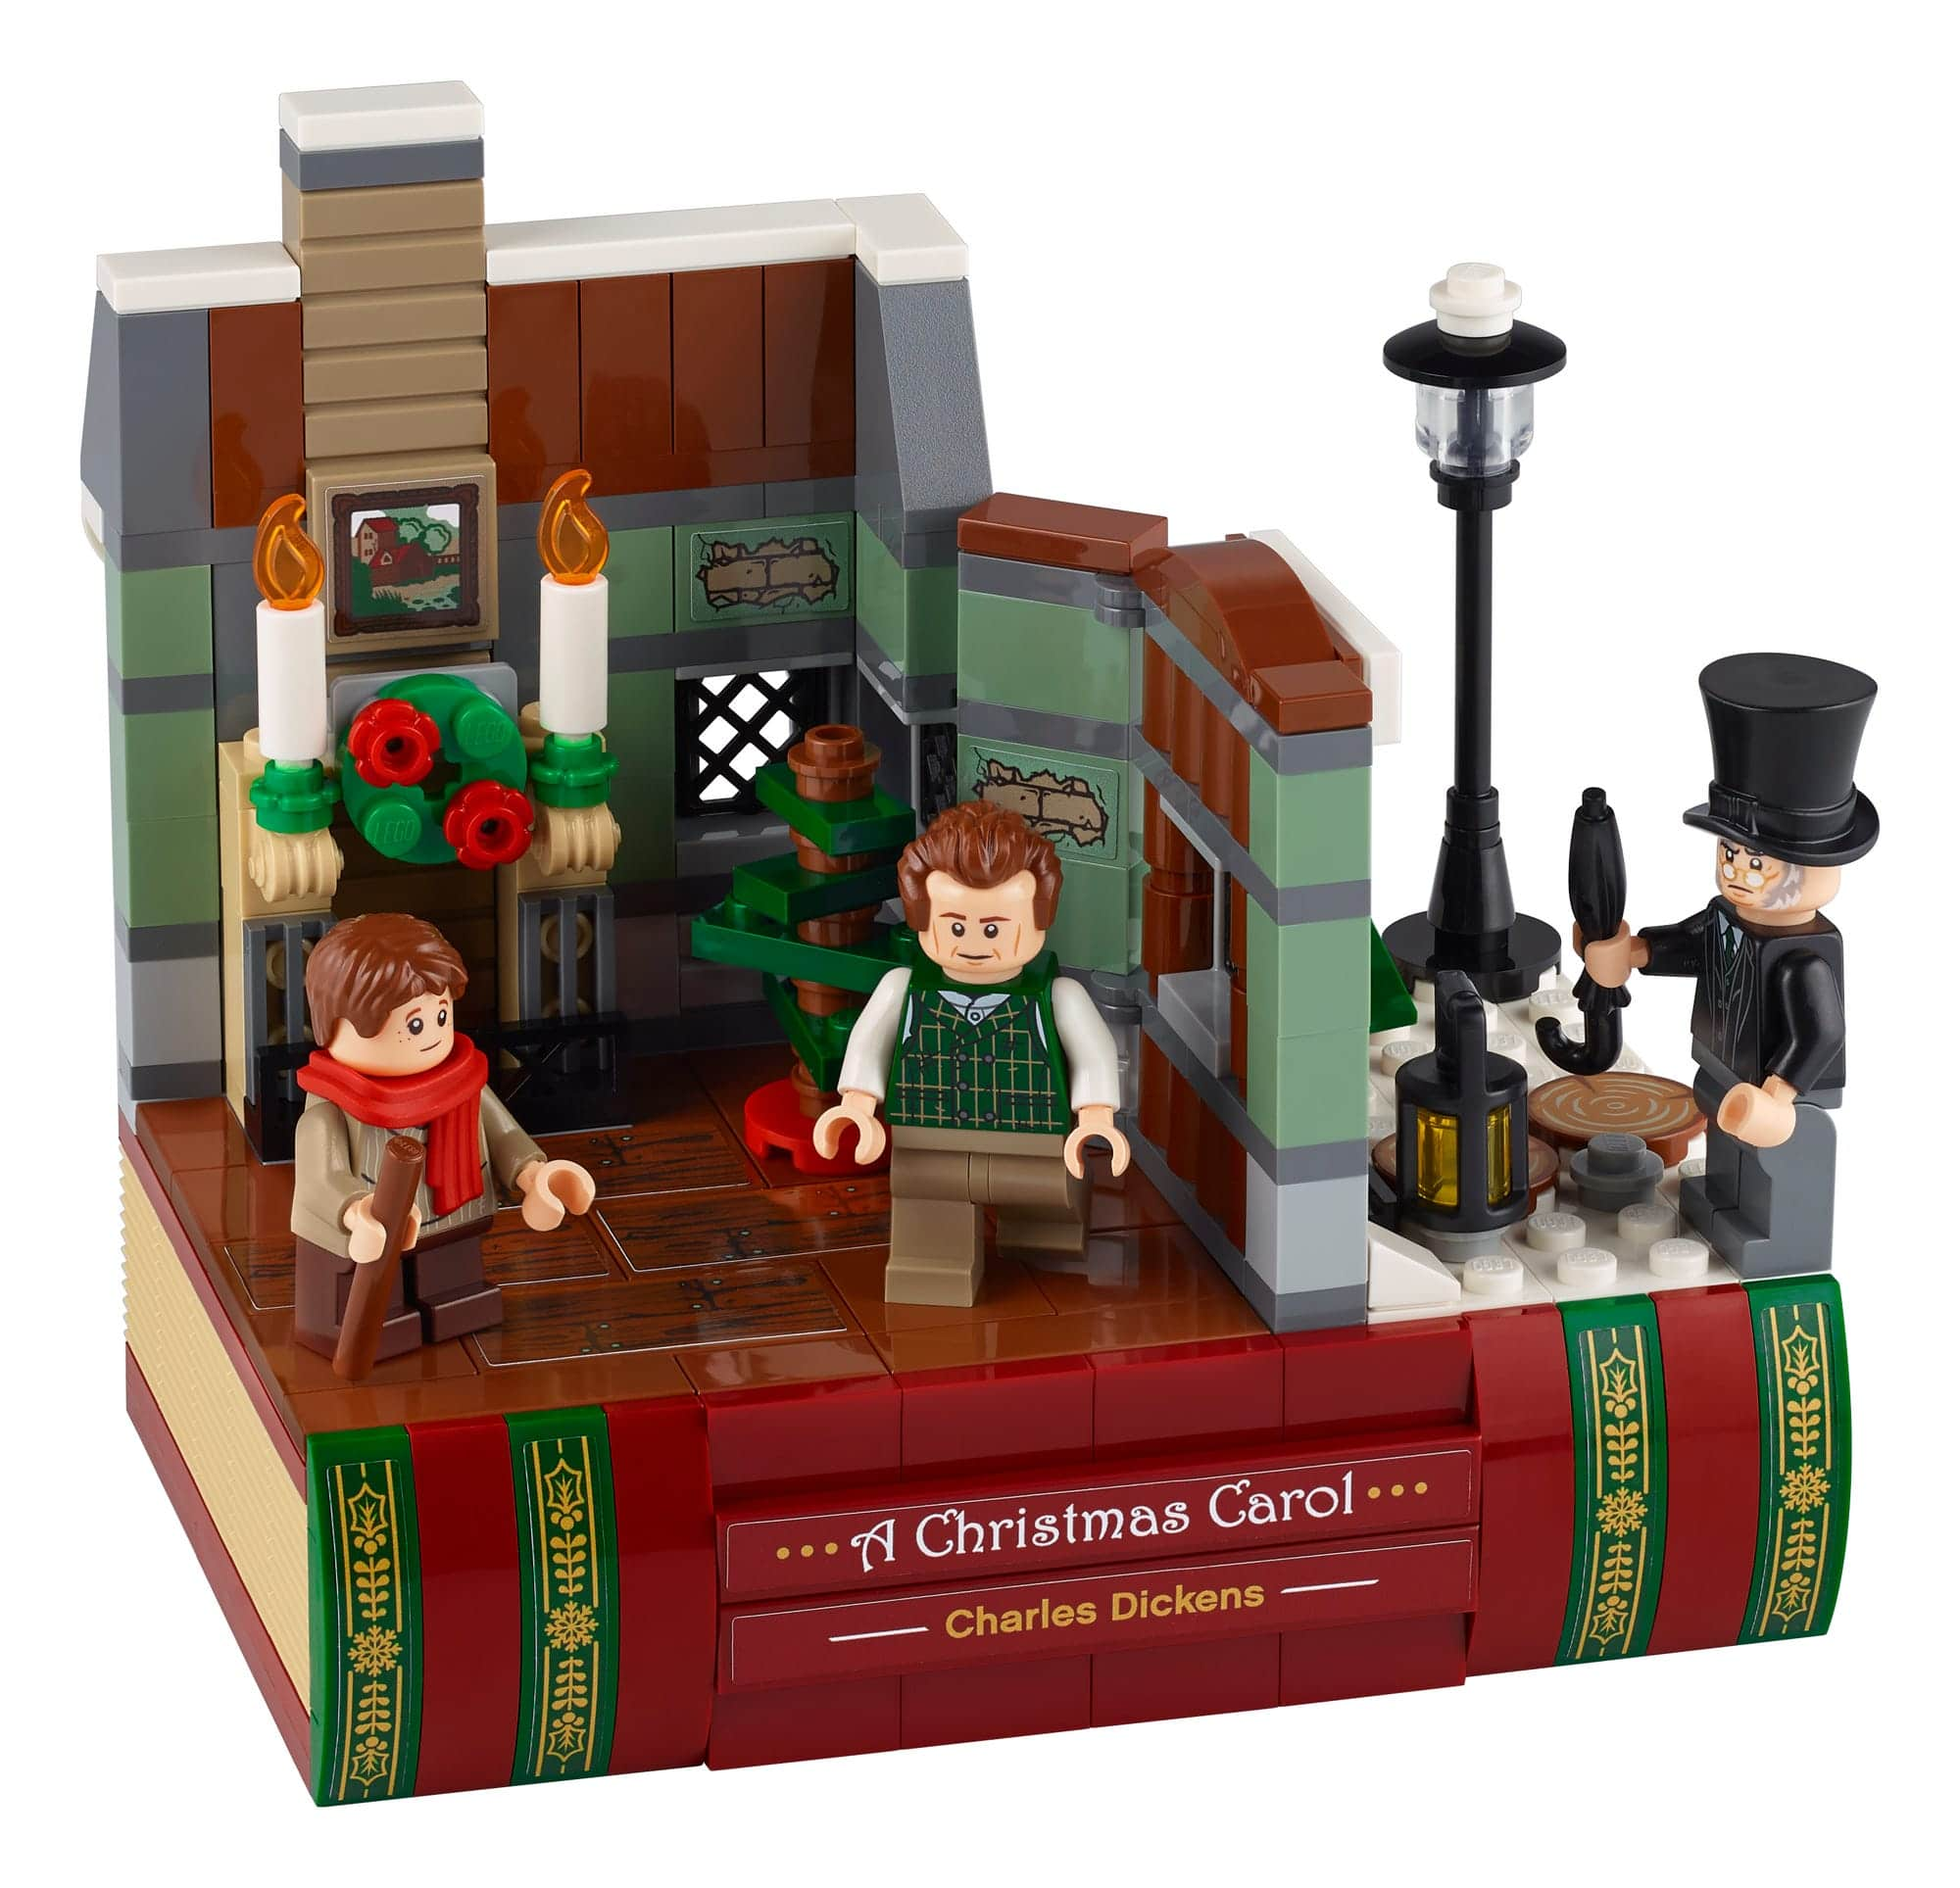 LEGO 40410 Hommage An Charles Dickens 1